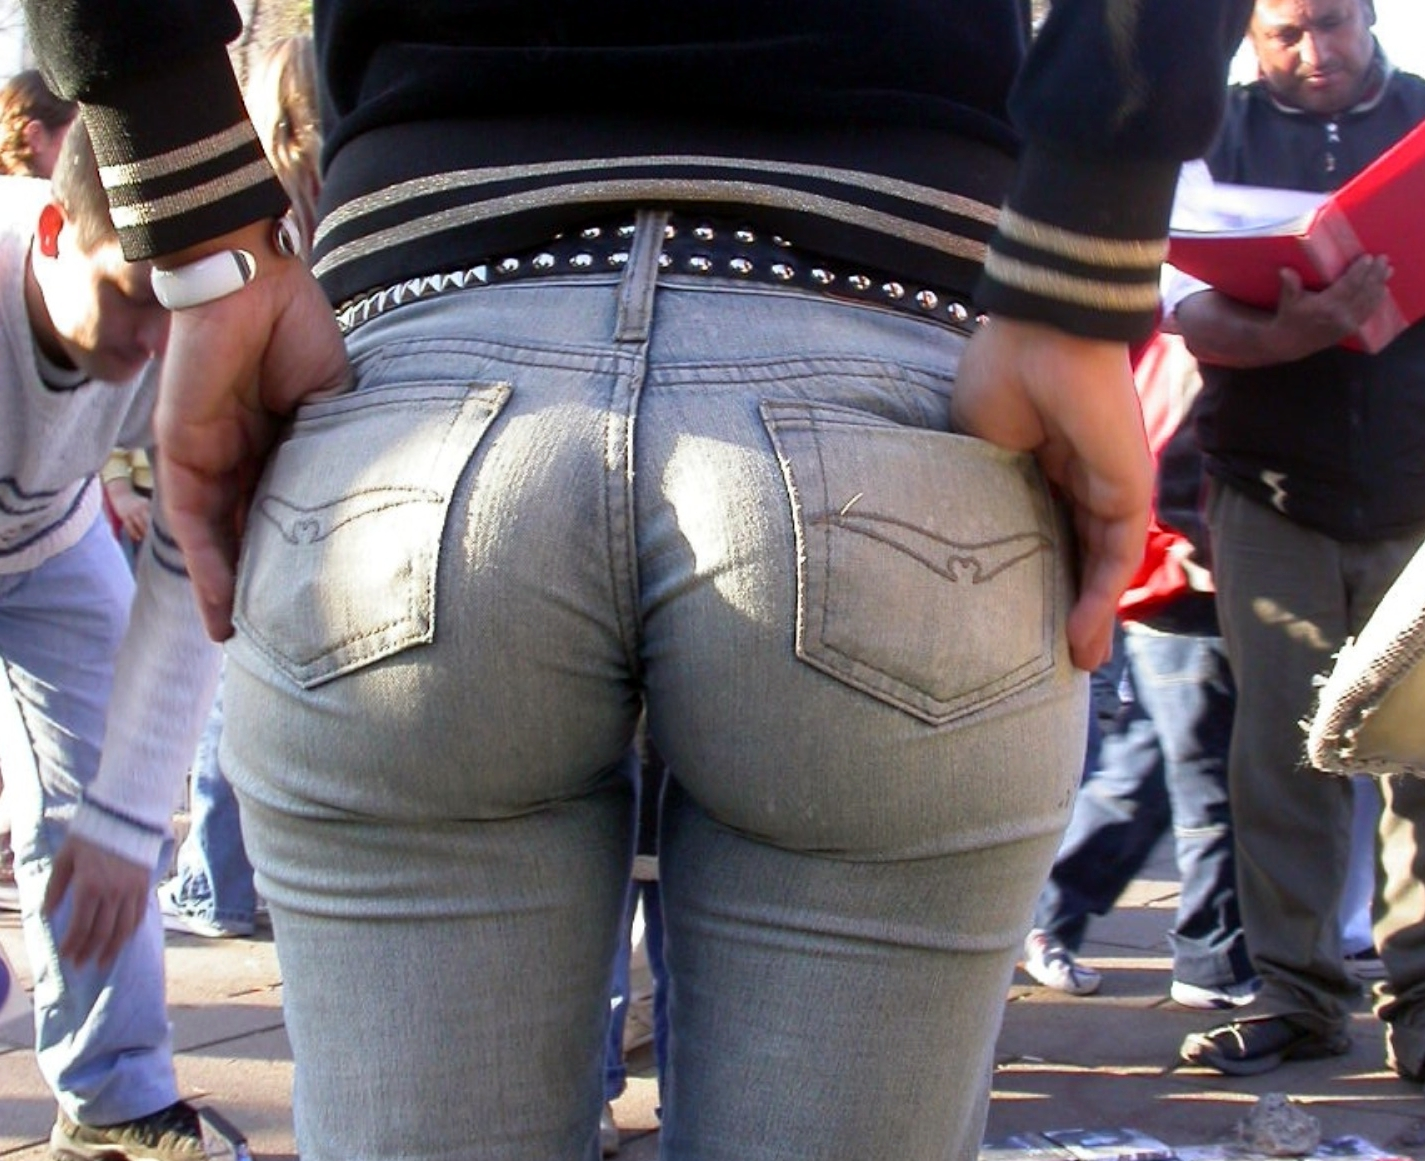 big butt in tight jeans